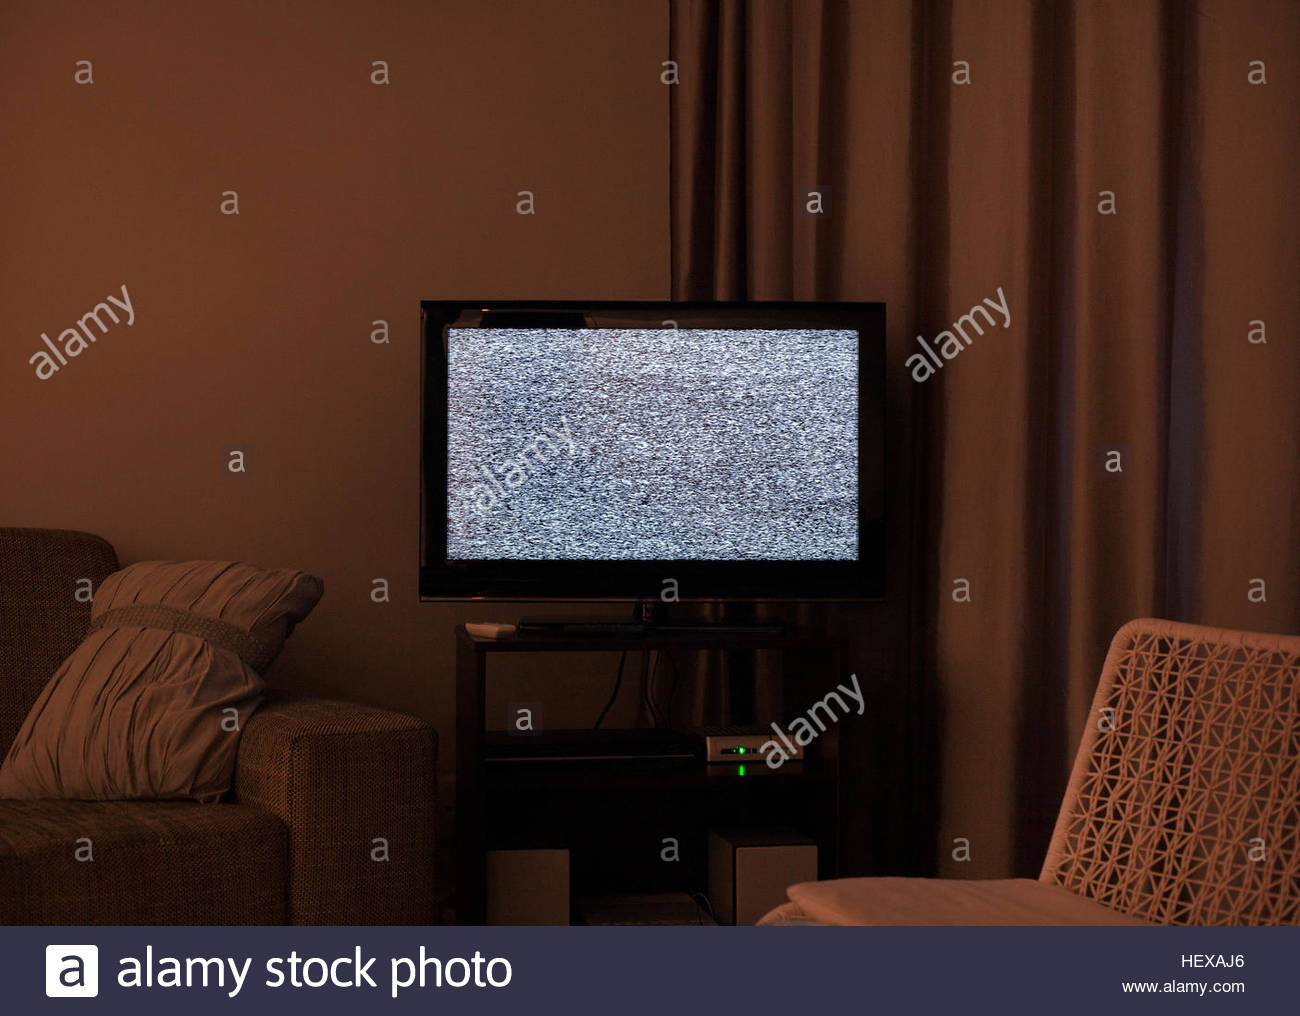 Darkened living room with static noise on TV screen - Stock Image